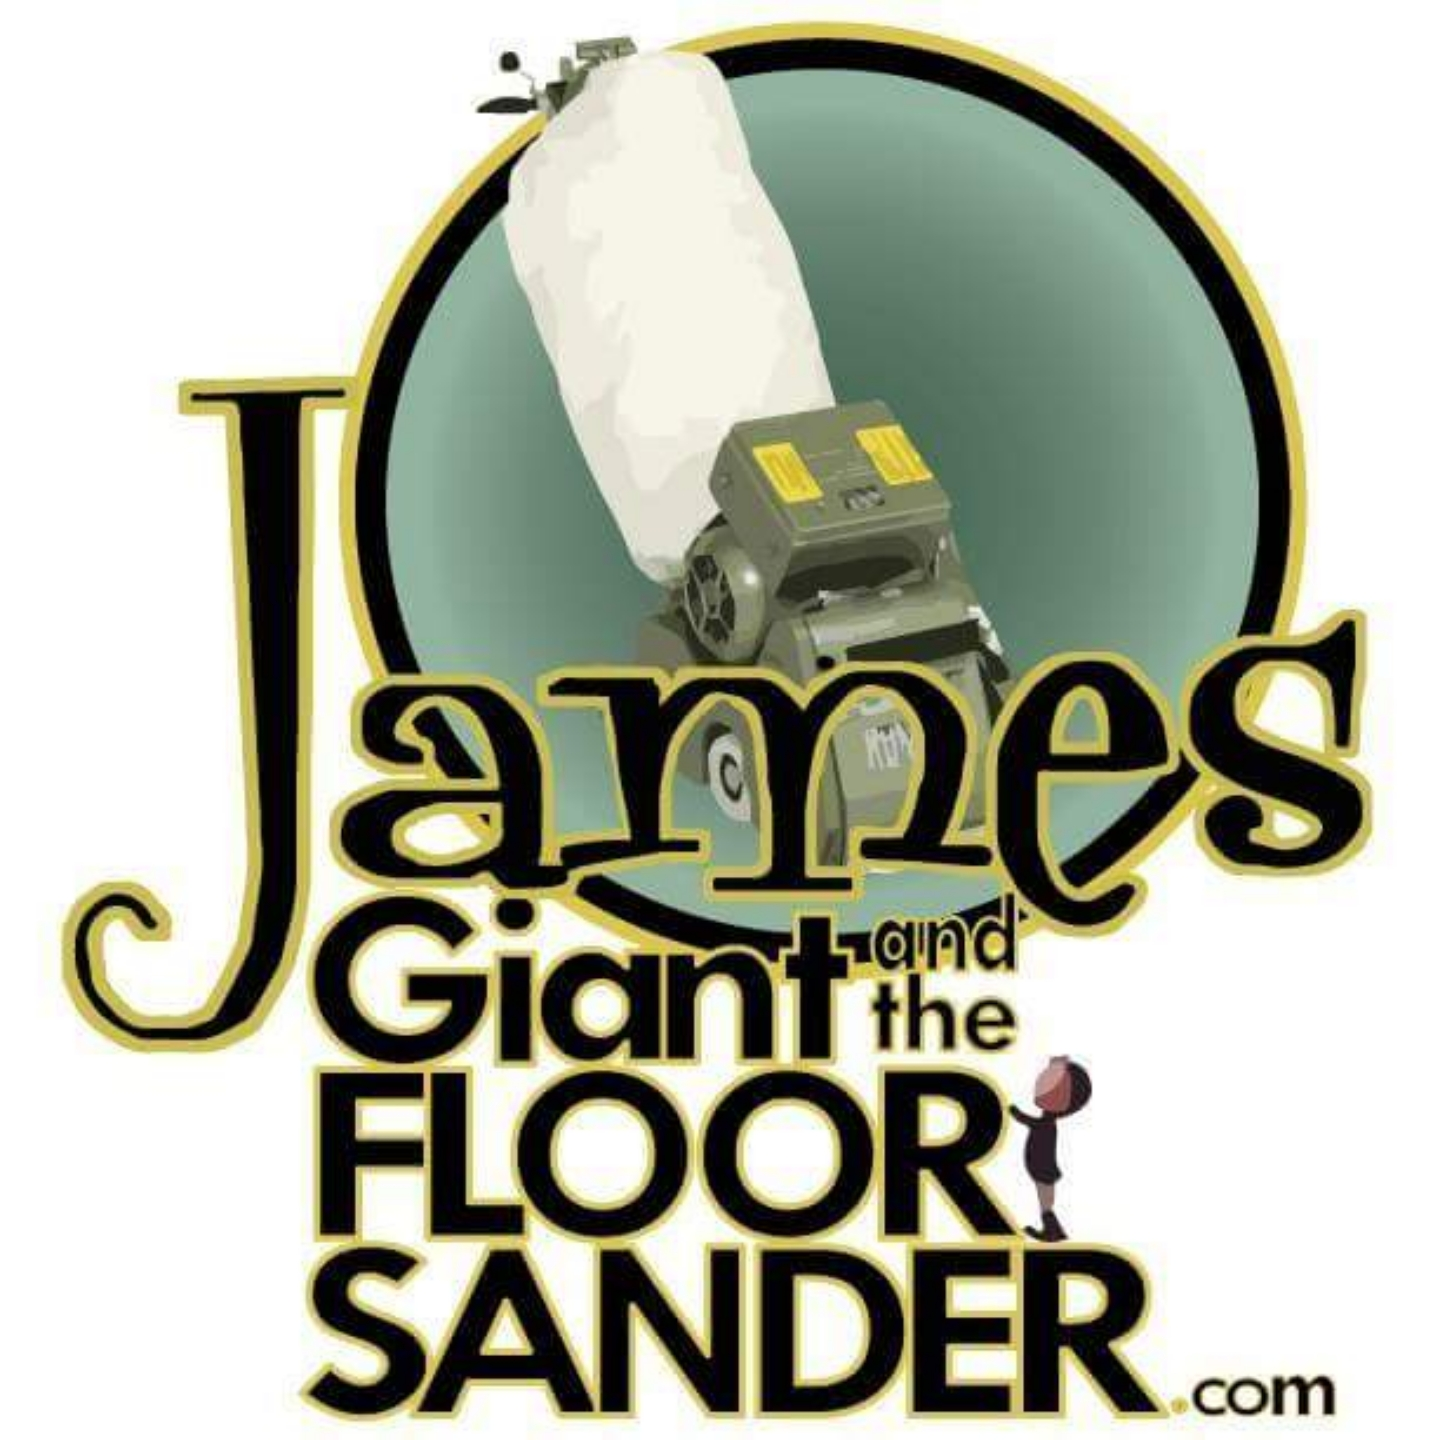 James and the Giant Floor Sander